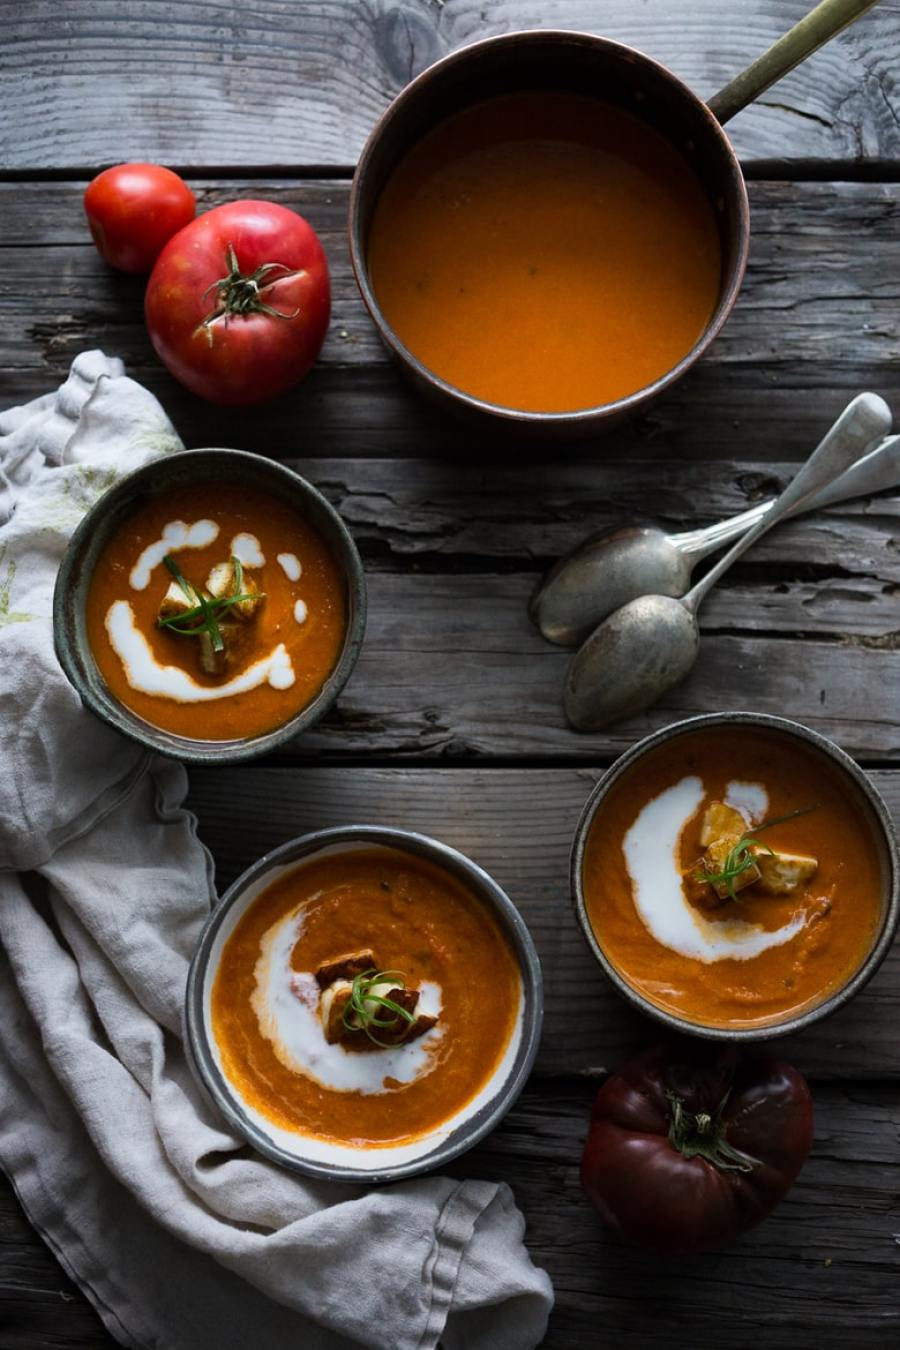 A simple tasty recipe for Roasted Tomato Soup with Haloumi Croutons, Yogurt and Sumac, velvety and delicious! | www.feastingathome.com